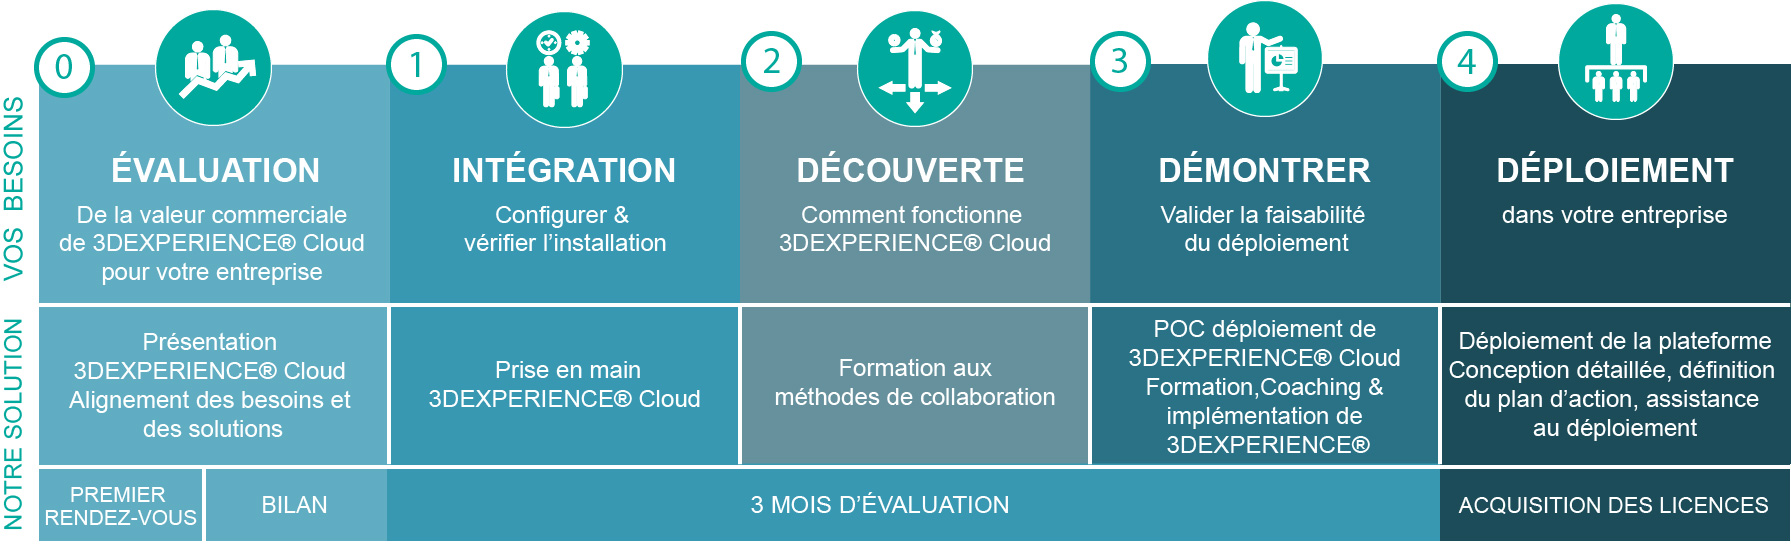 ready for cloud 3DEXPERIENCE